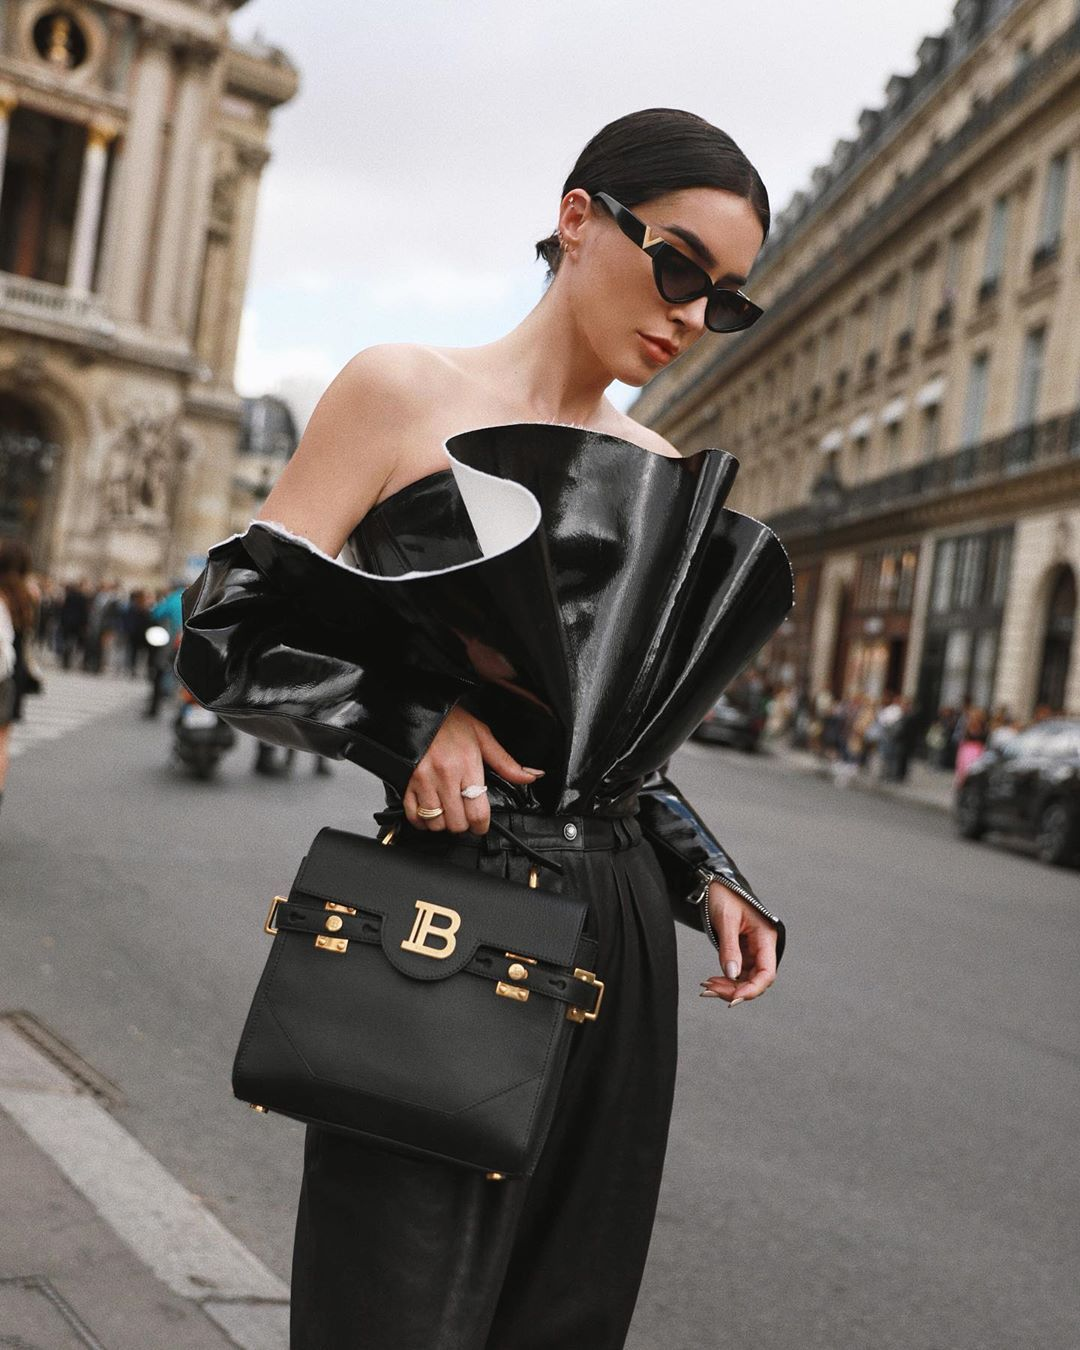 brittany-xavier-balmain-b-buzz-23-black-grained-leather-tote-instagram